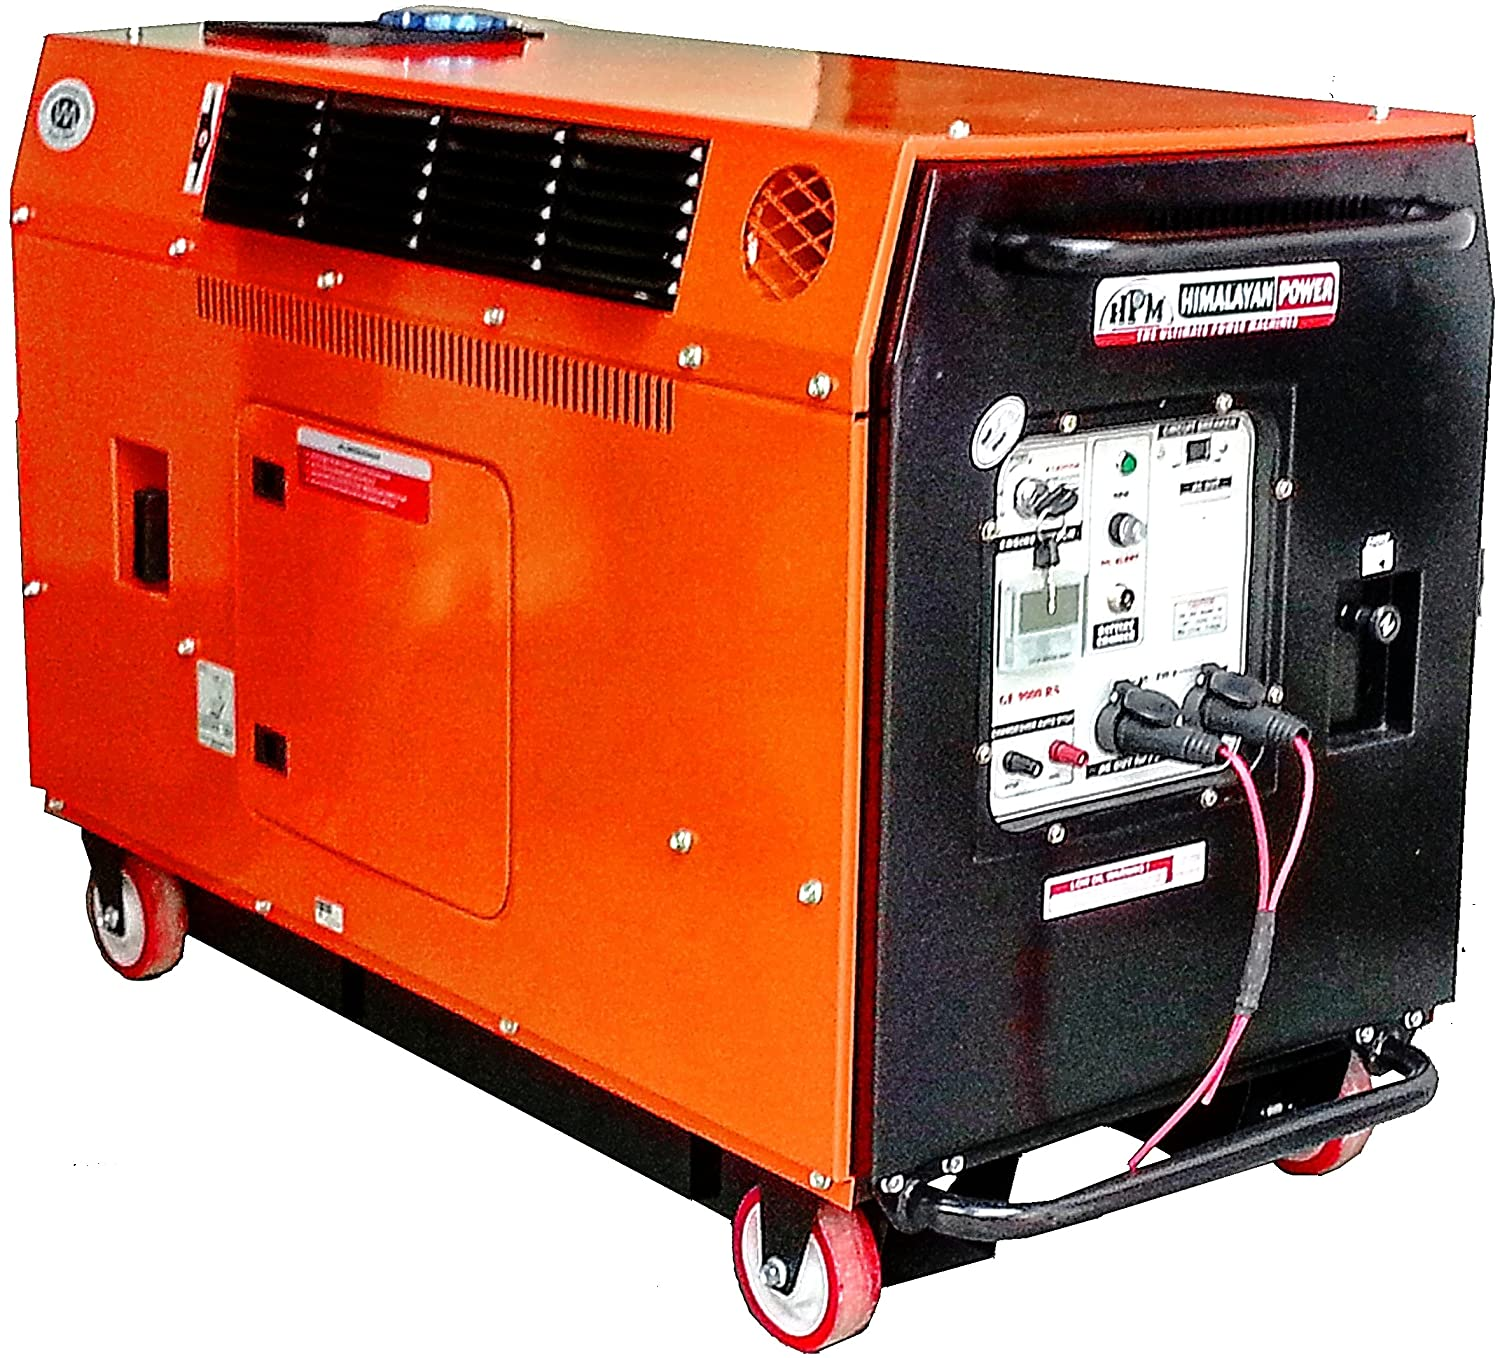 generator. Gastech Bio Power Ge 9000 8500 Va Silent Portable Generator- Petrol: Amazon.in: Industrial \u0026 Scientific Generator